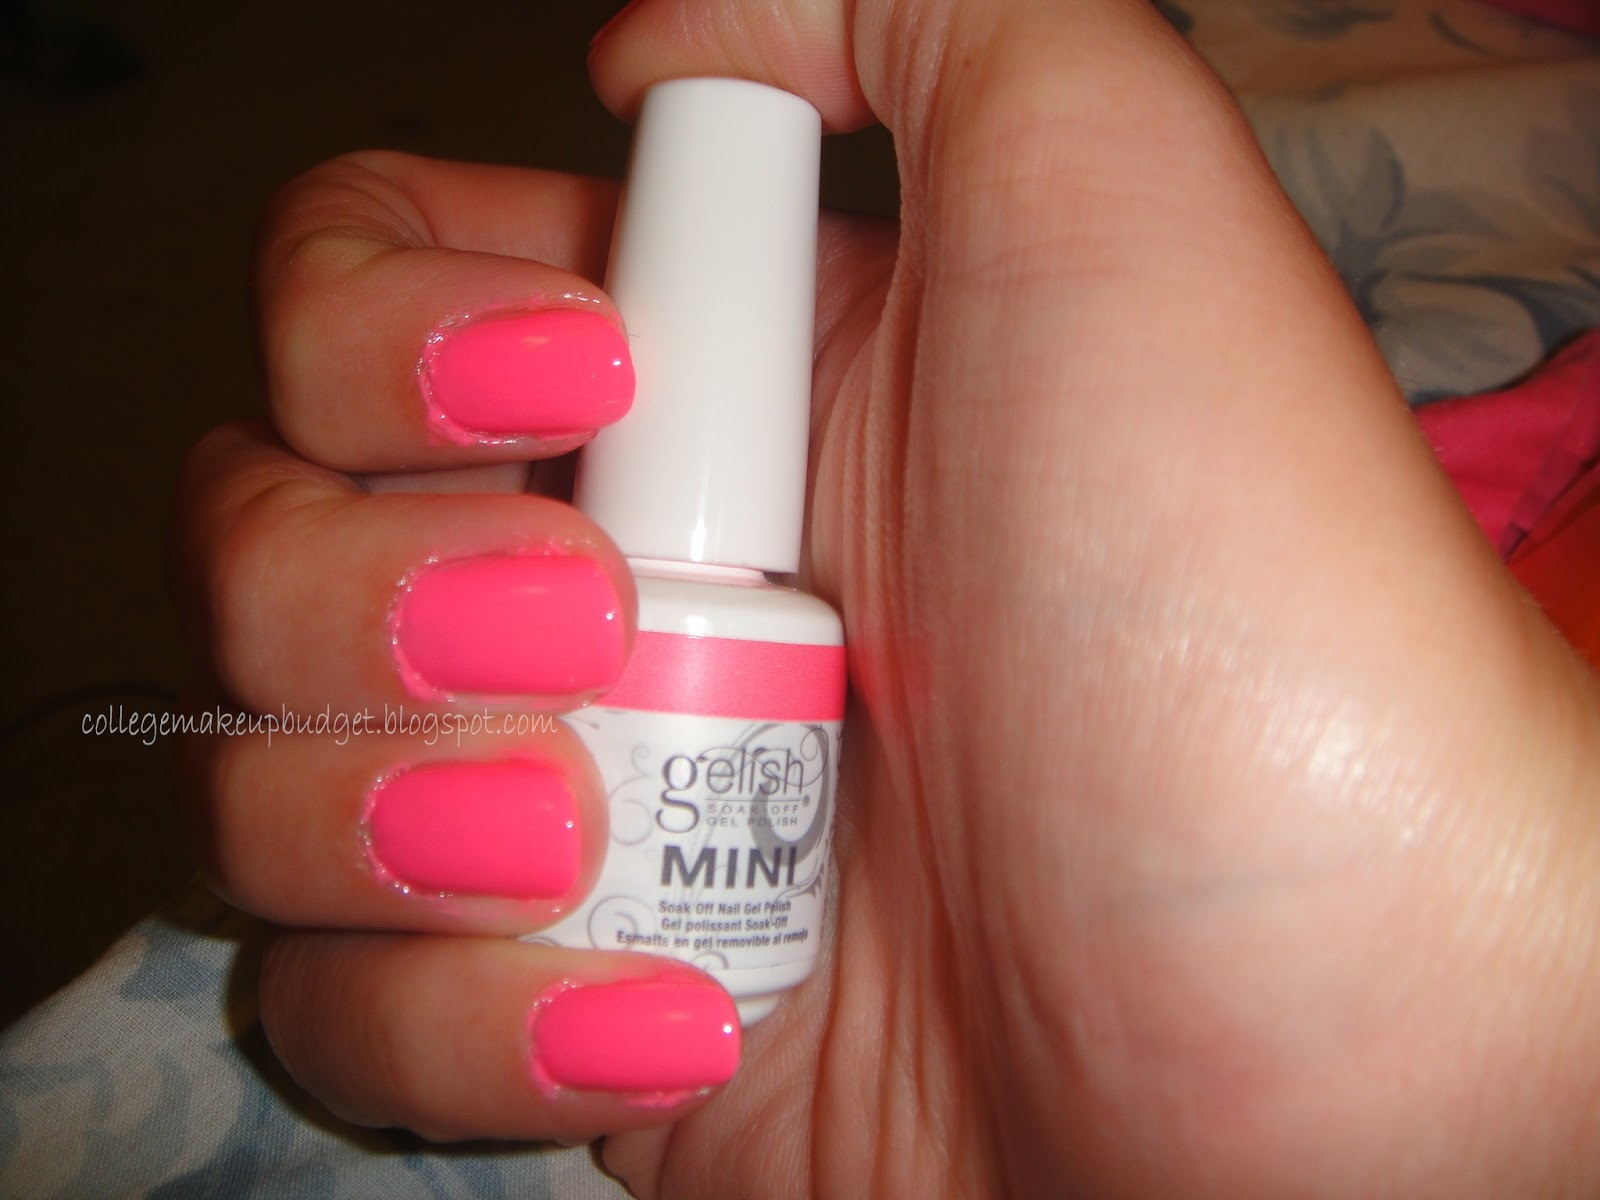 Gelish Make You Blink Pink Swatch,Gelish Make You Blink Pink Review, Gelish Make You Blink Pink, Gelish, Make You Blink Pink, neon pink, gel neon pink,